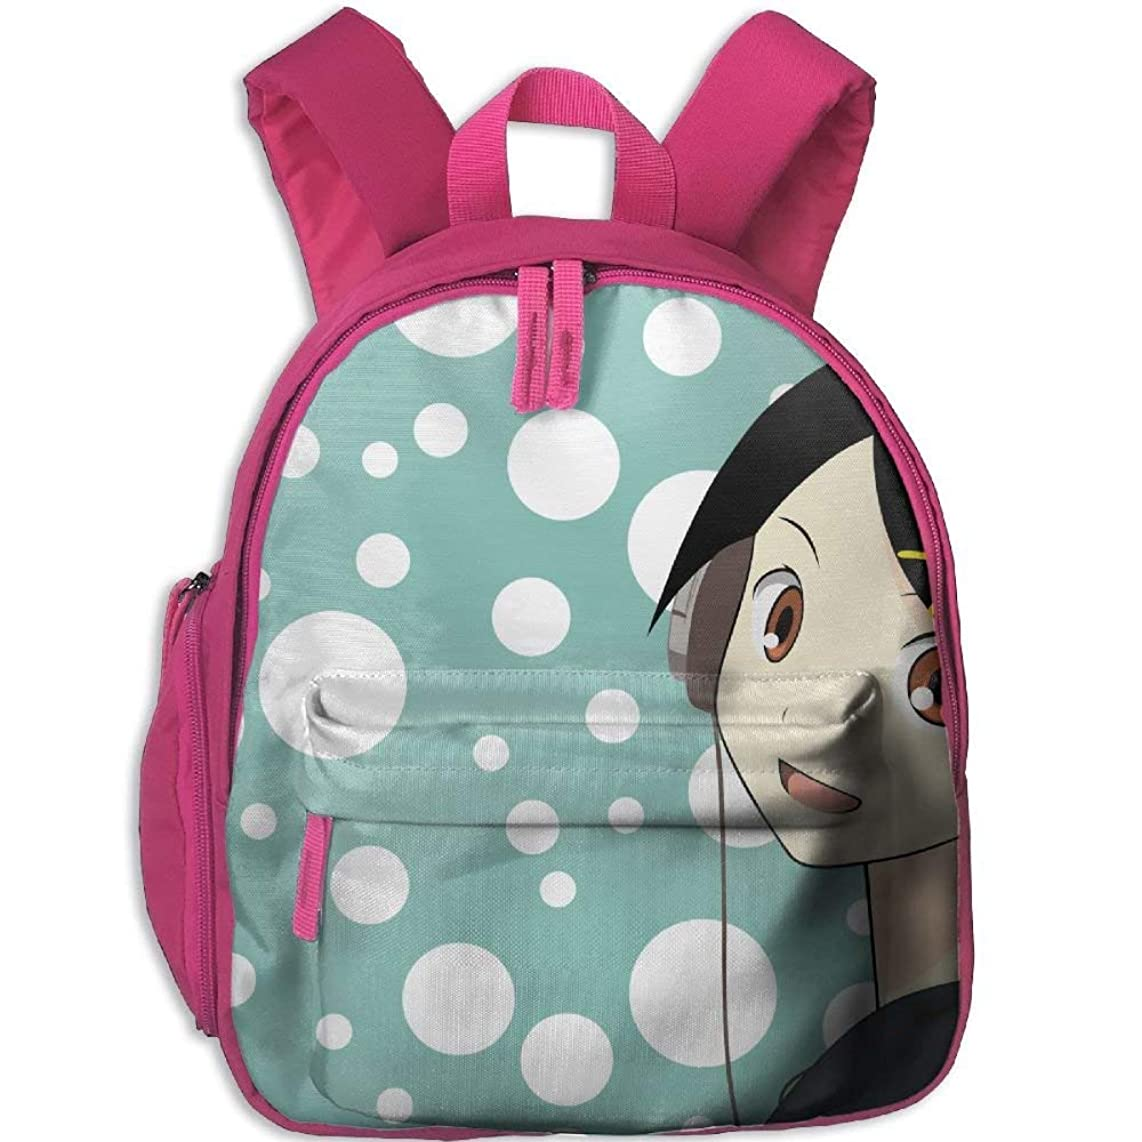 Anime Polka Dot Green White Girl Children School Bag Book Backpack Outdoor Travel Pocket Double Zipper